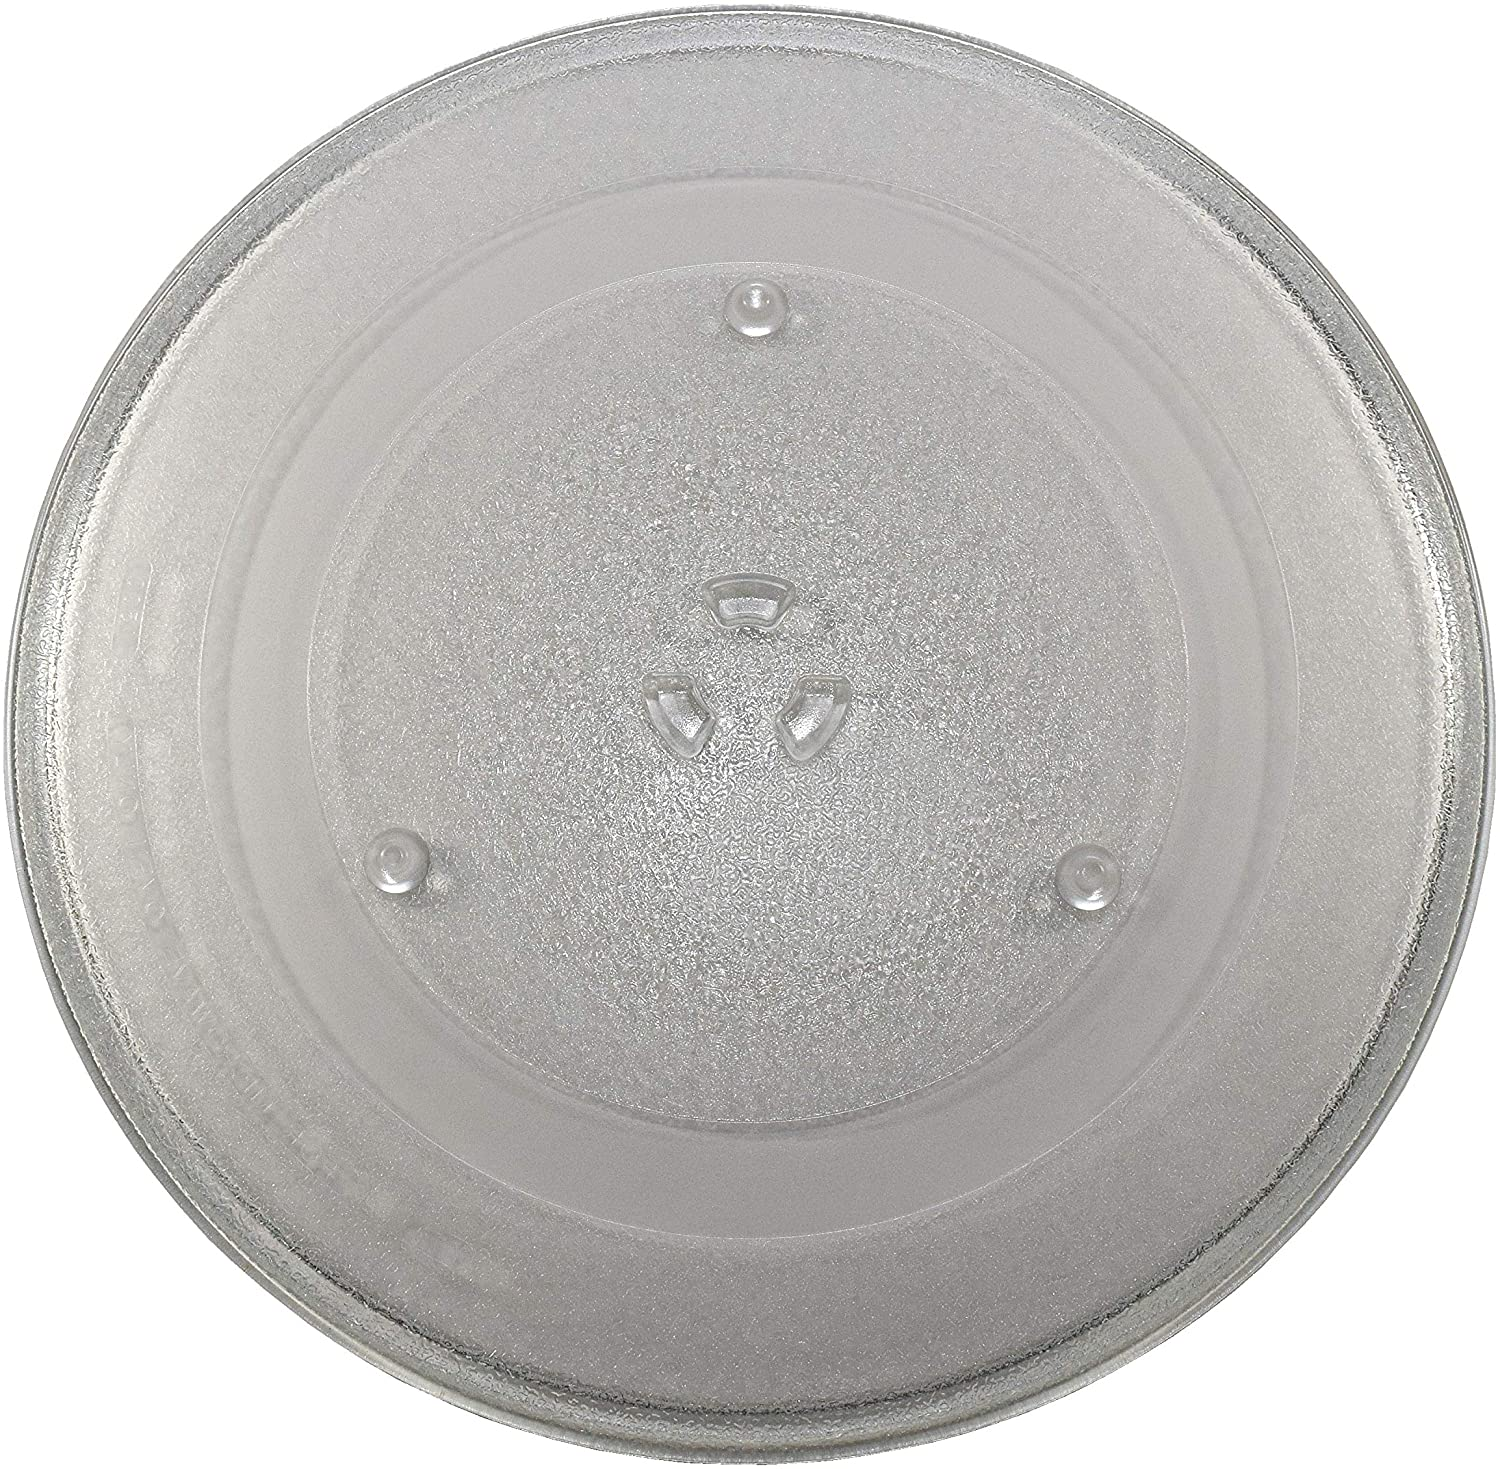 hqrp 14 1 8 inch glass turntable tray fits whirlpool maytag kitchenaid jenn air amana microwave oven cooking plate 360mm 14 125 walmart com